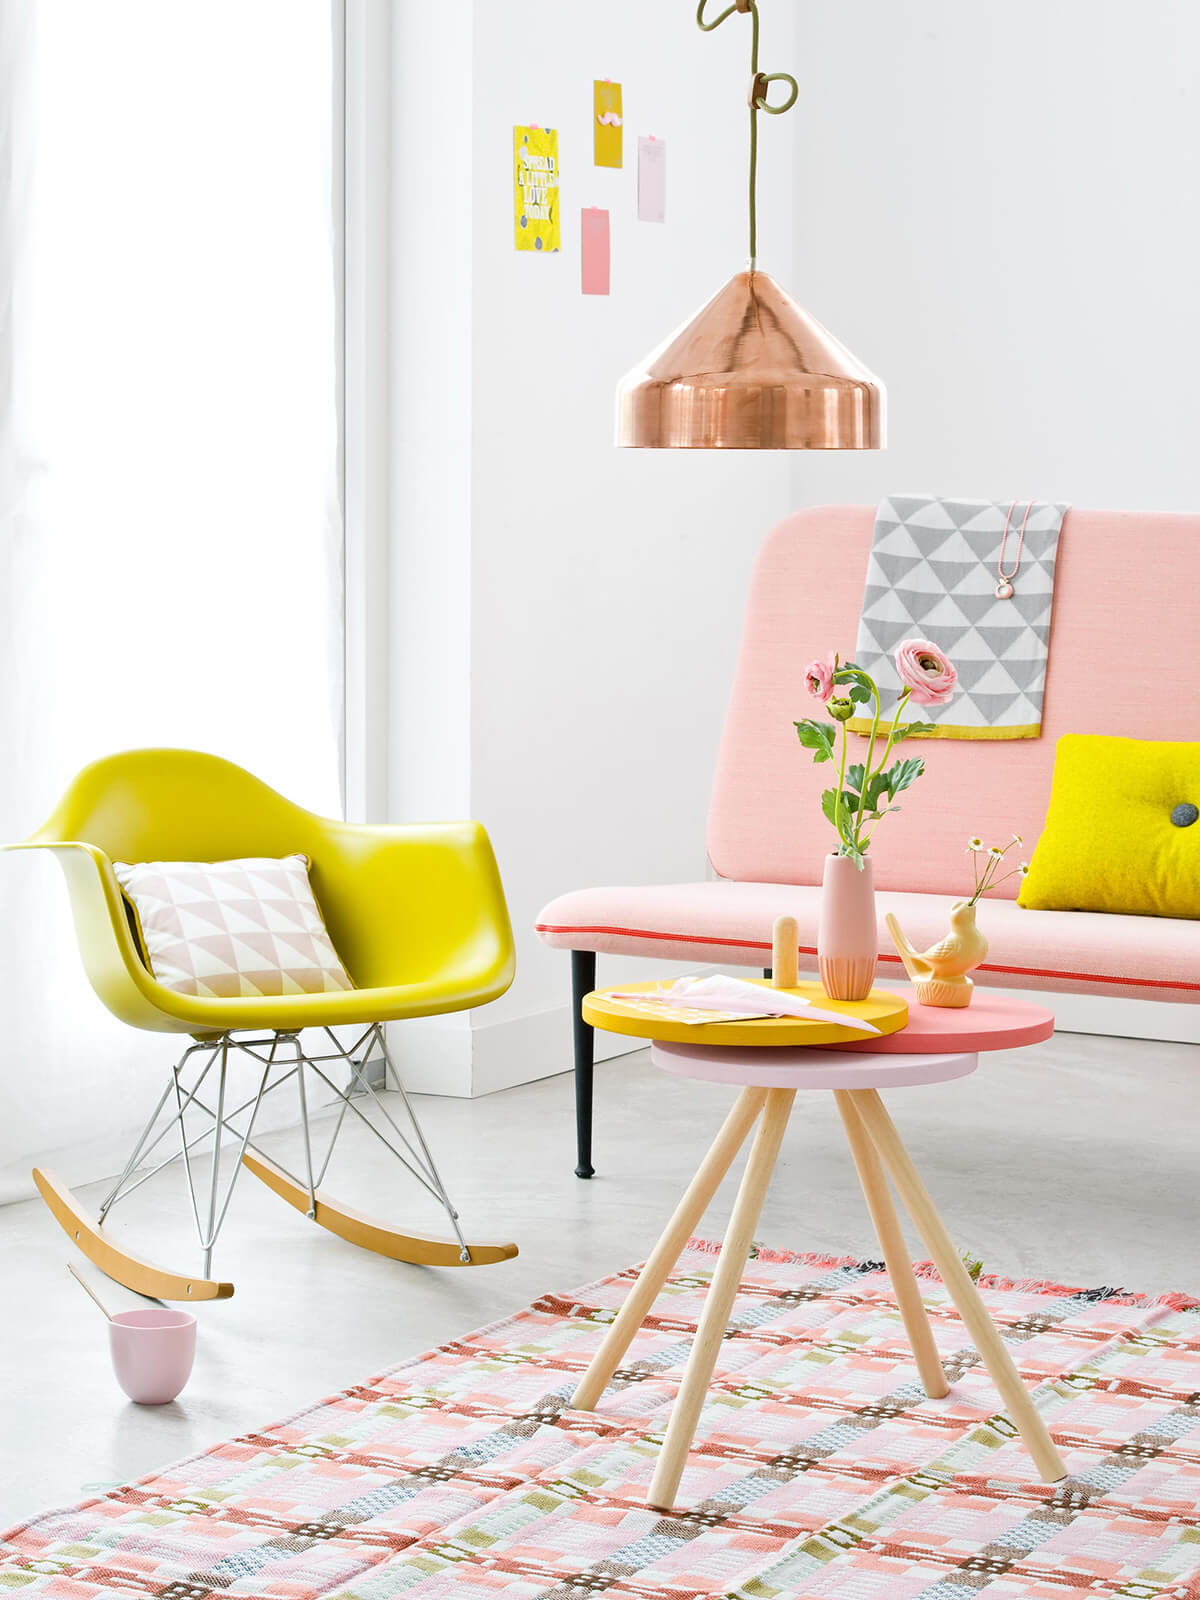 2. Pucker Up Pink Lemonade Retro Sitting Room